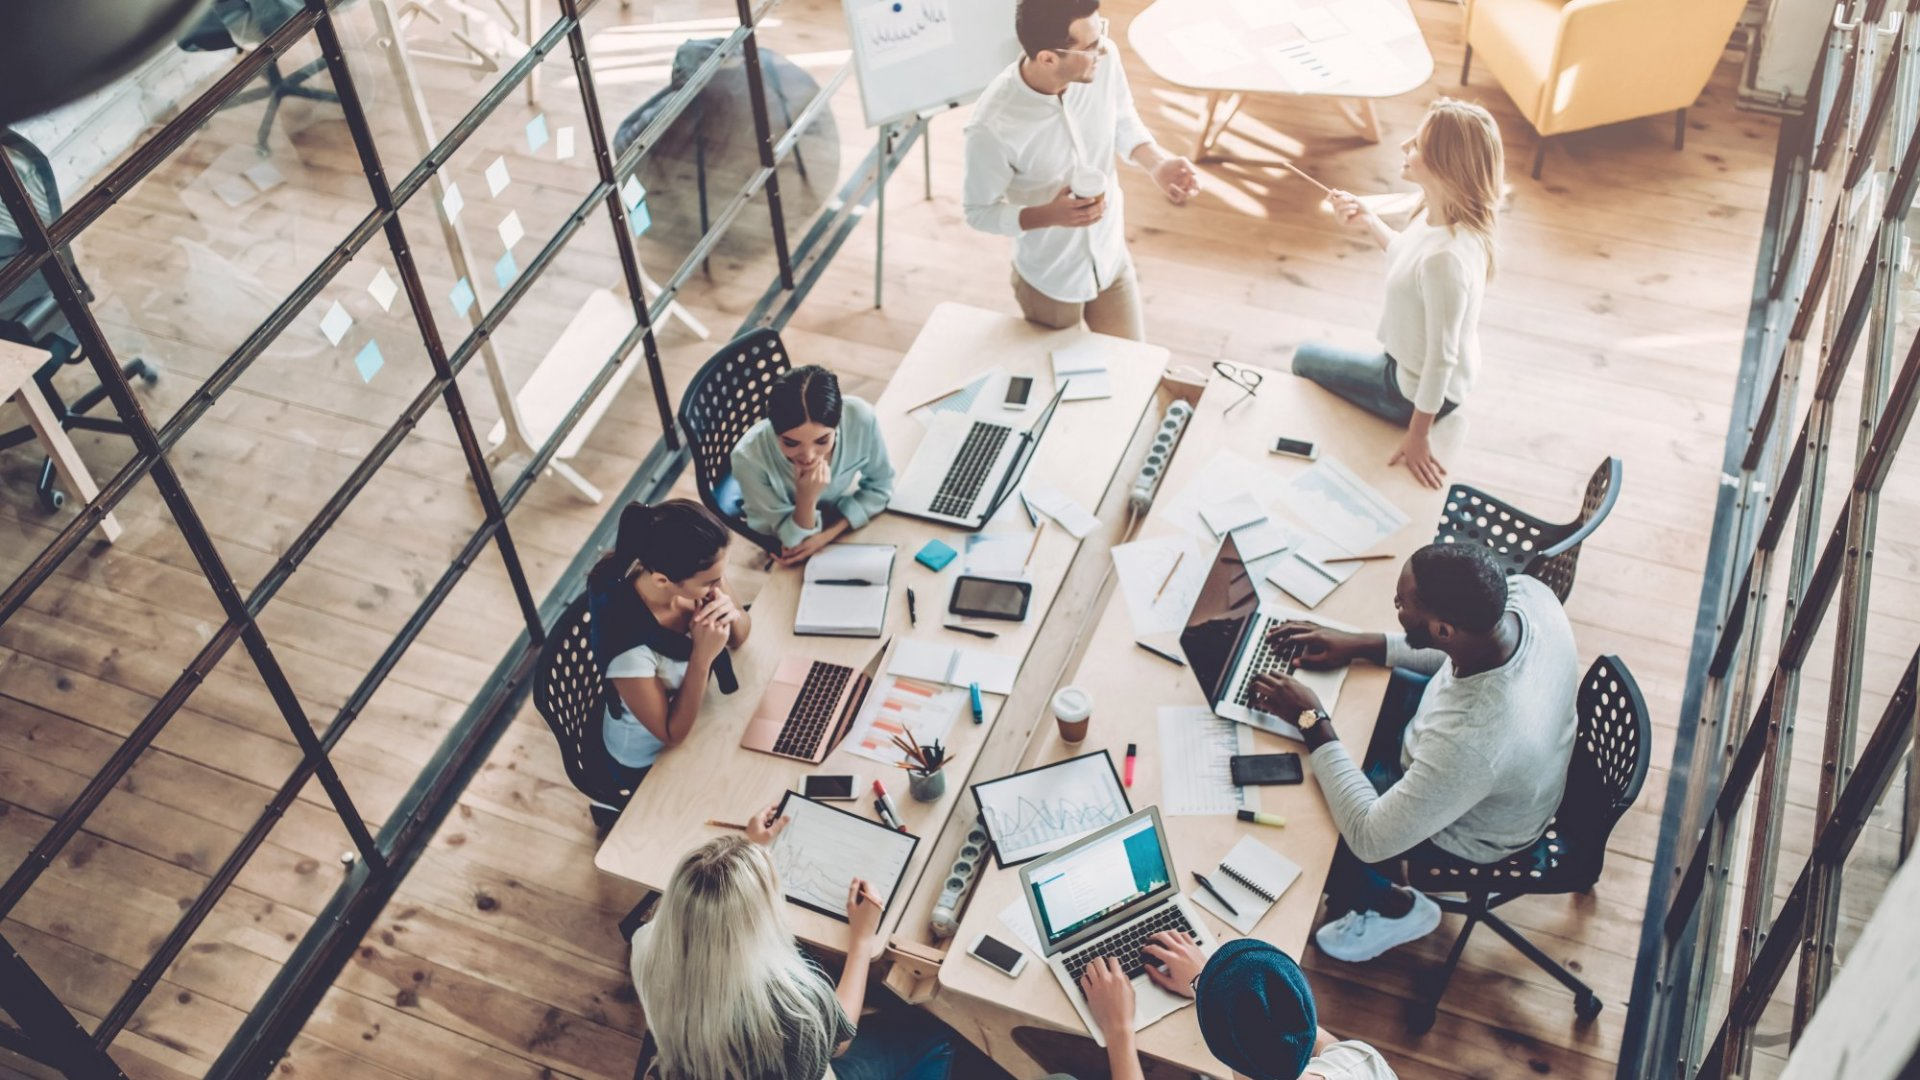 3 Tips to Reduce Meeting Time and Be More Productive